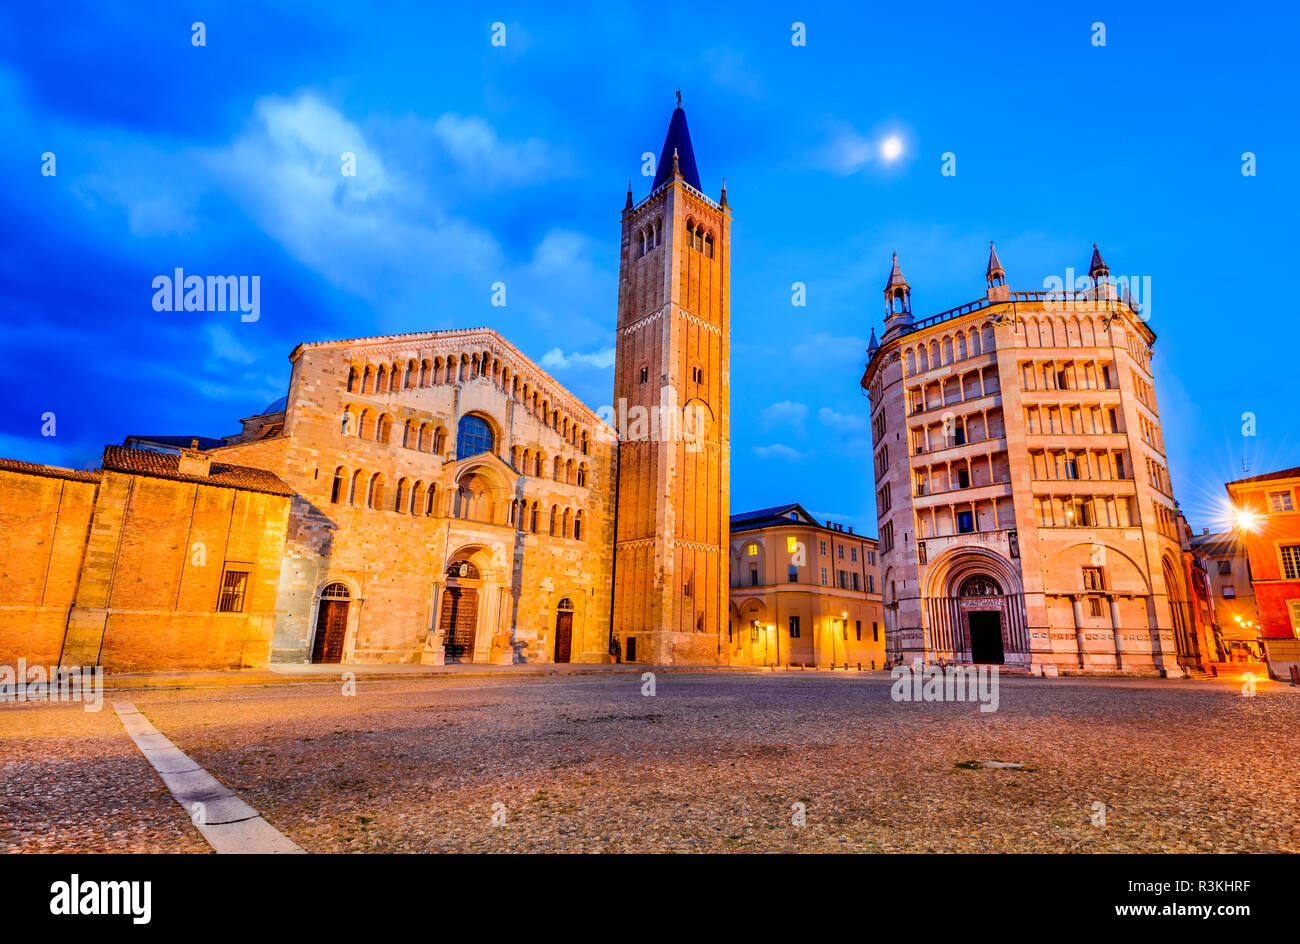 Parma, Italy - Piazza del Duomo with the Cathedral built in 1059, Emilia-Romagna. - Stock Image